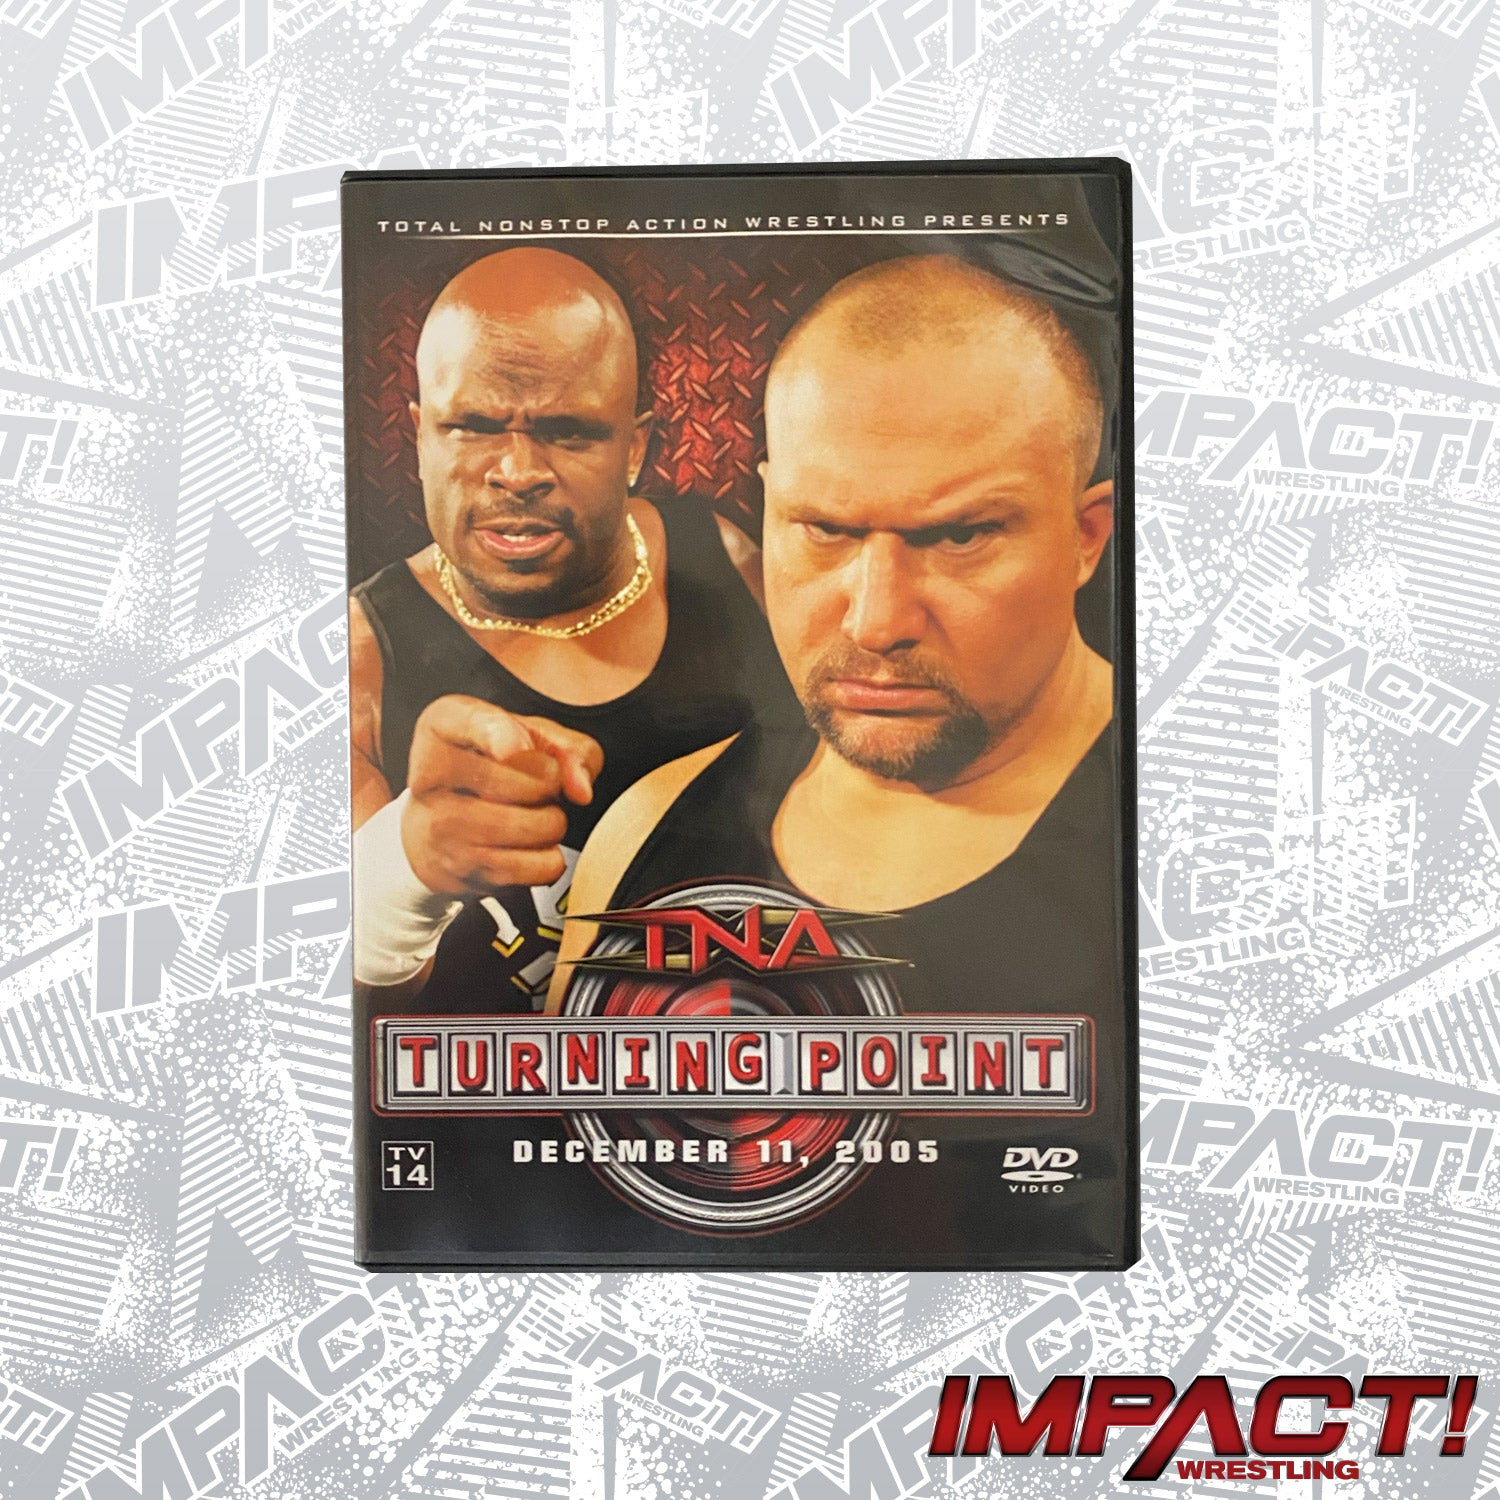 Turning Point 2005 DVD